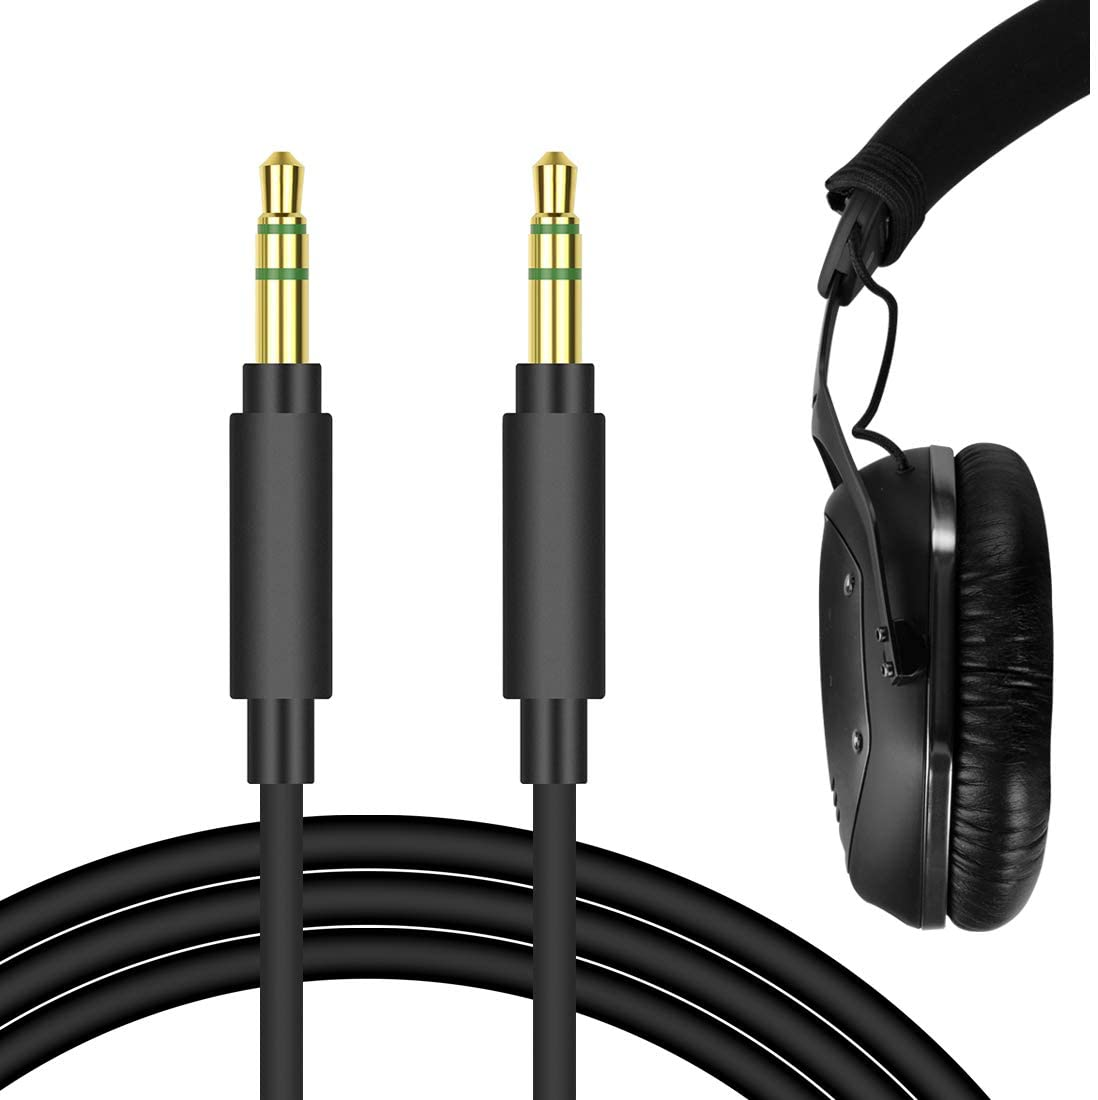 Geekria QuickFit Cable for V-Moda Crossfade, LP2, M-100, M-80, V-80, Crossfade LP, Koss BT540i, Pro4S, ProDj200, SP540 Headphones, 3.5mm Male Stereo Replacement Headphone Audio Cord (Black 5.6ft)